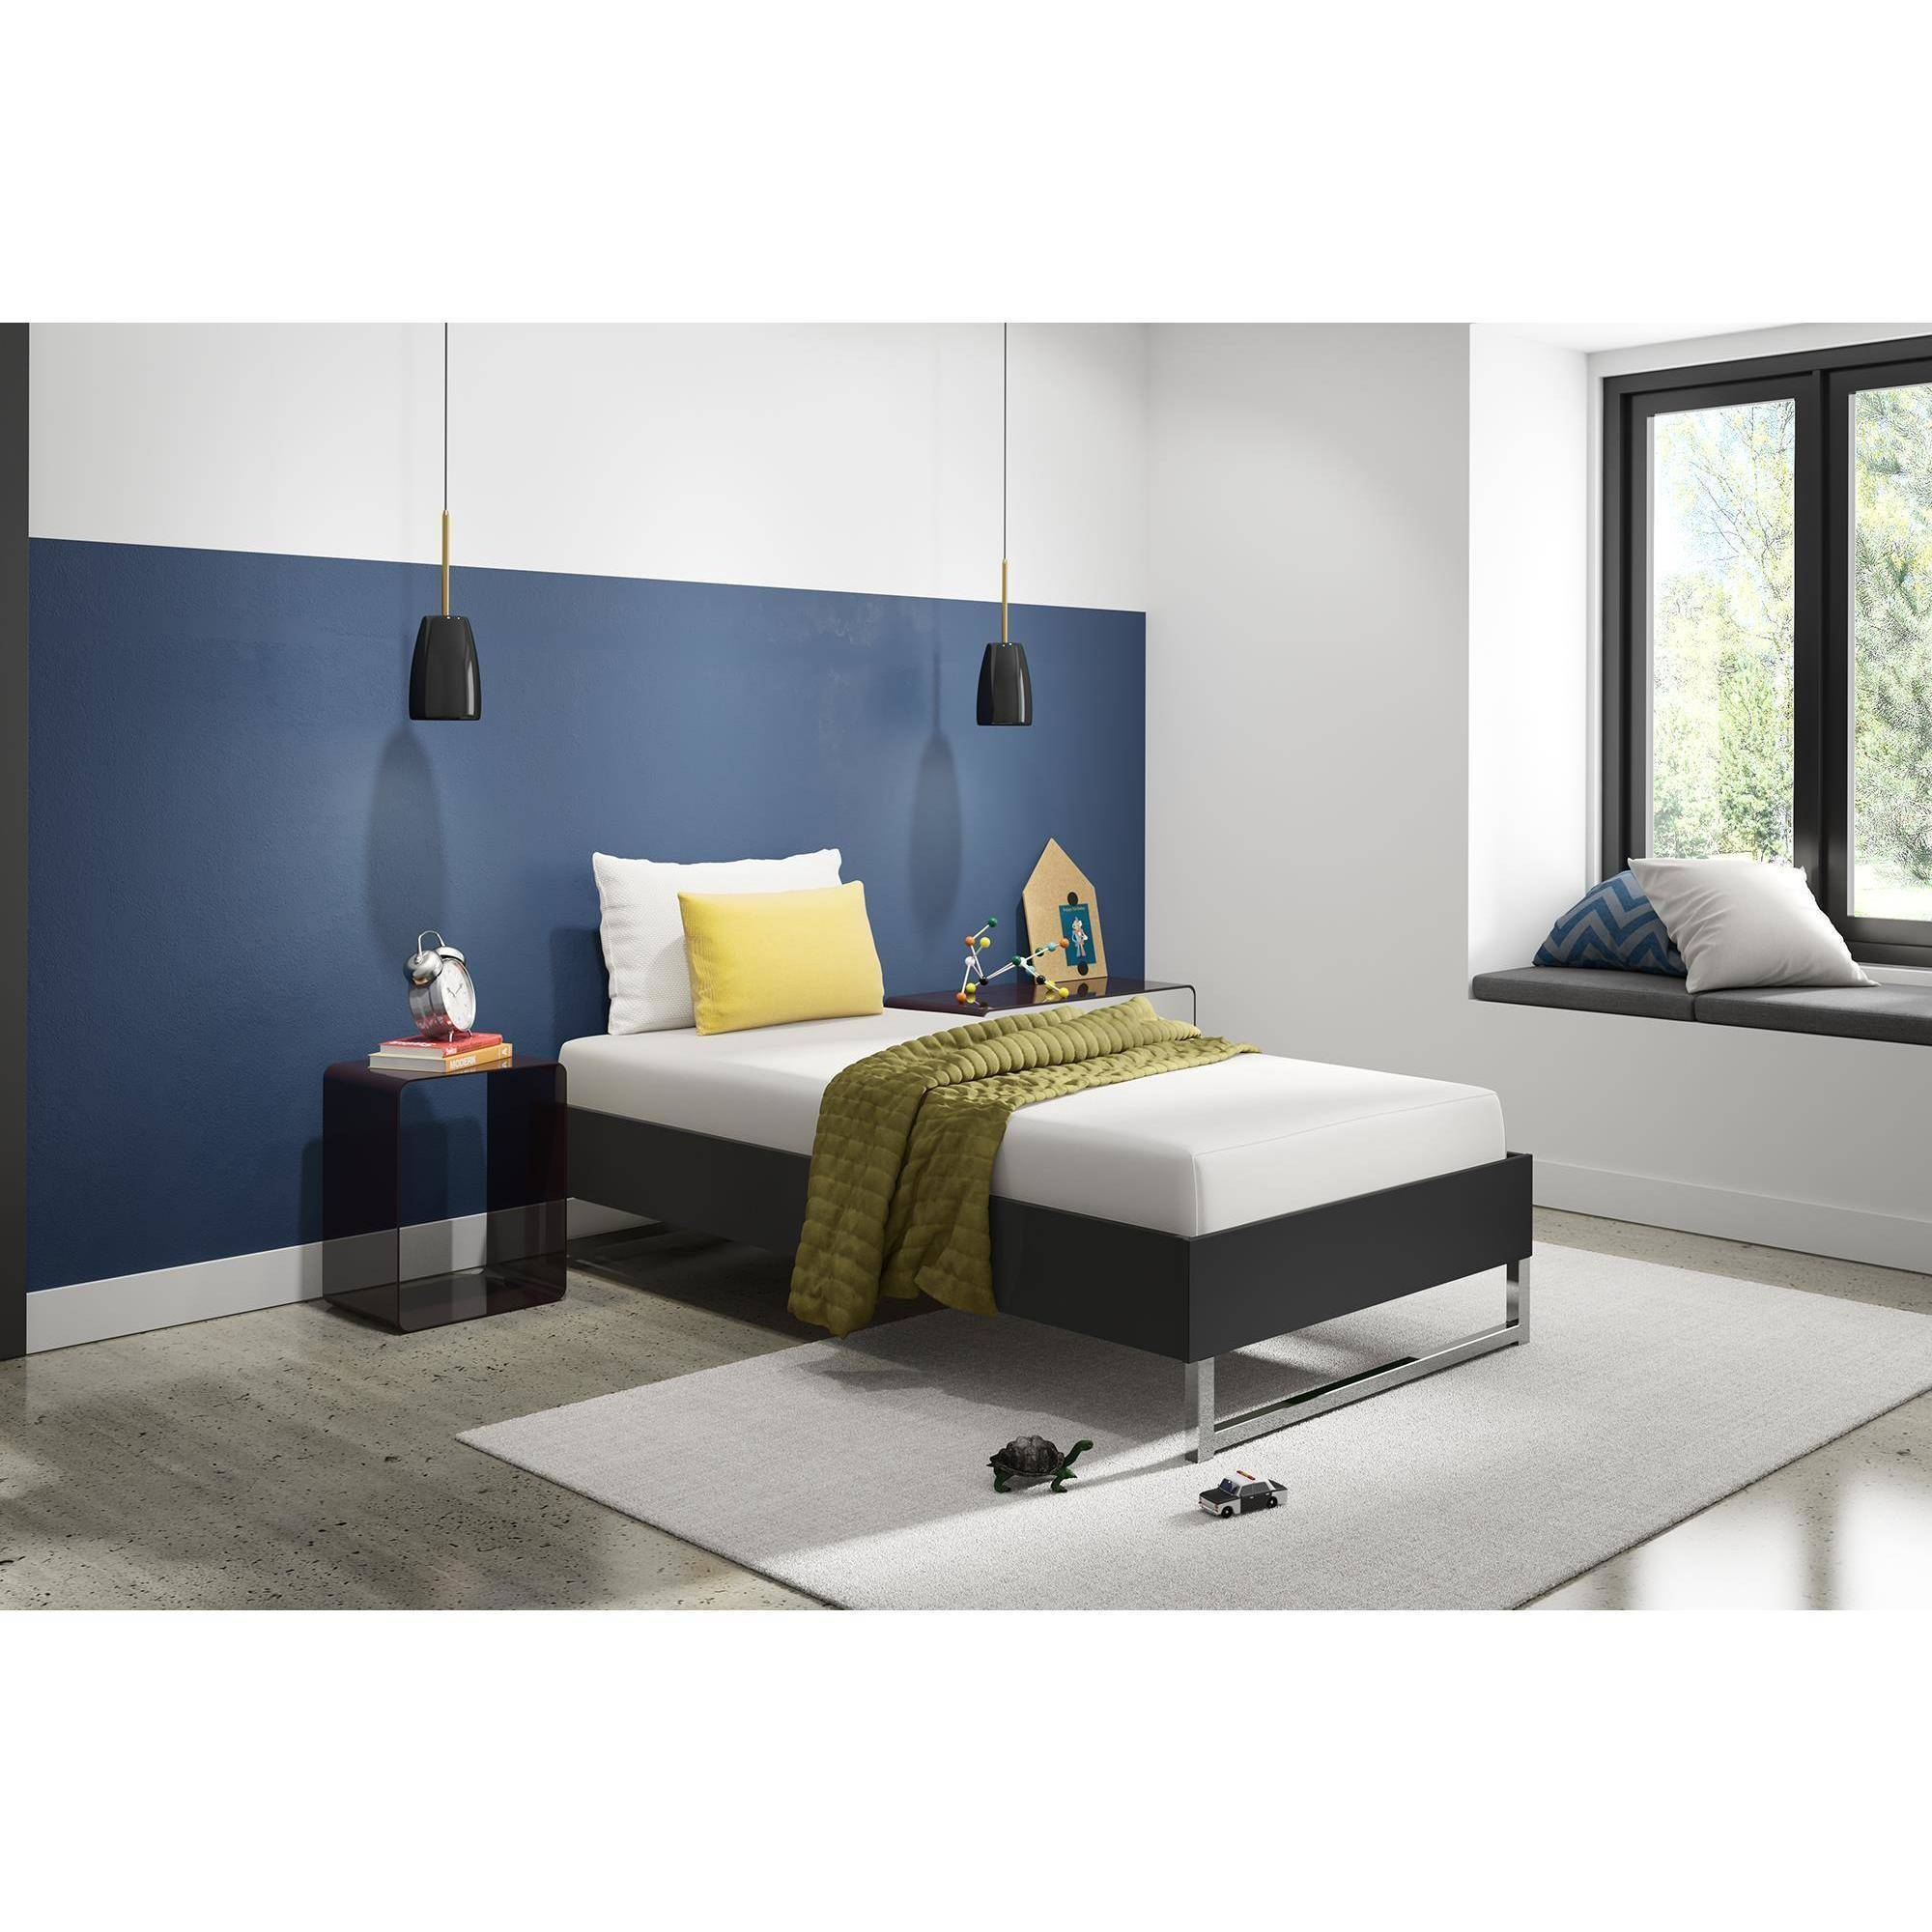 "Signature Sleep Memoir - 8"" Memory Foam Mattress"